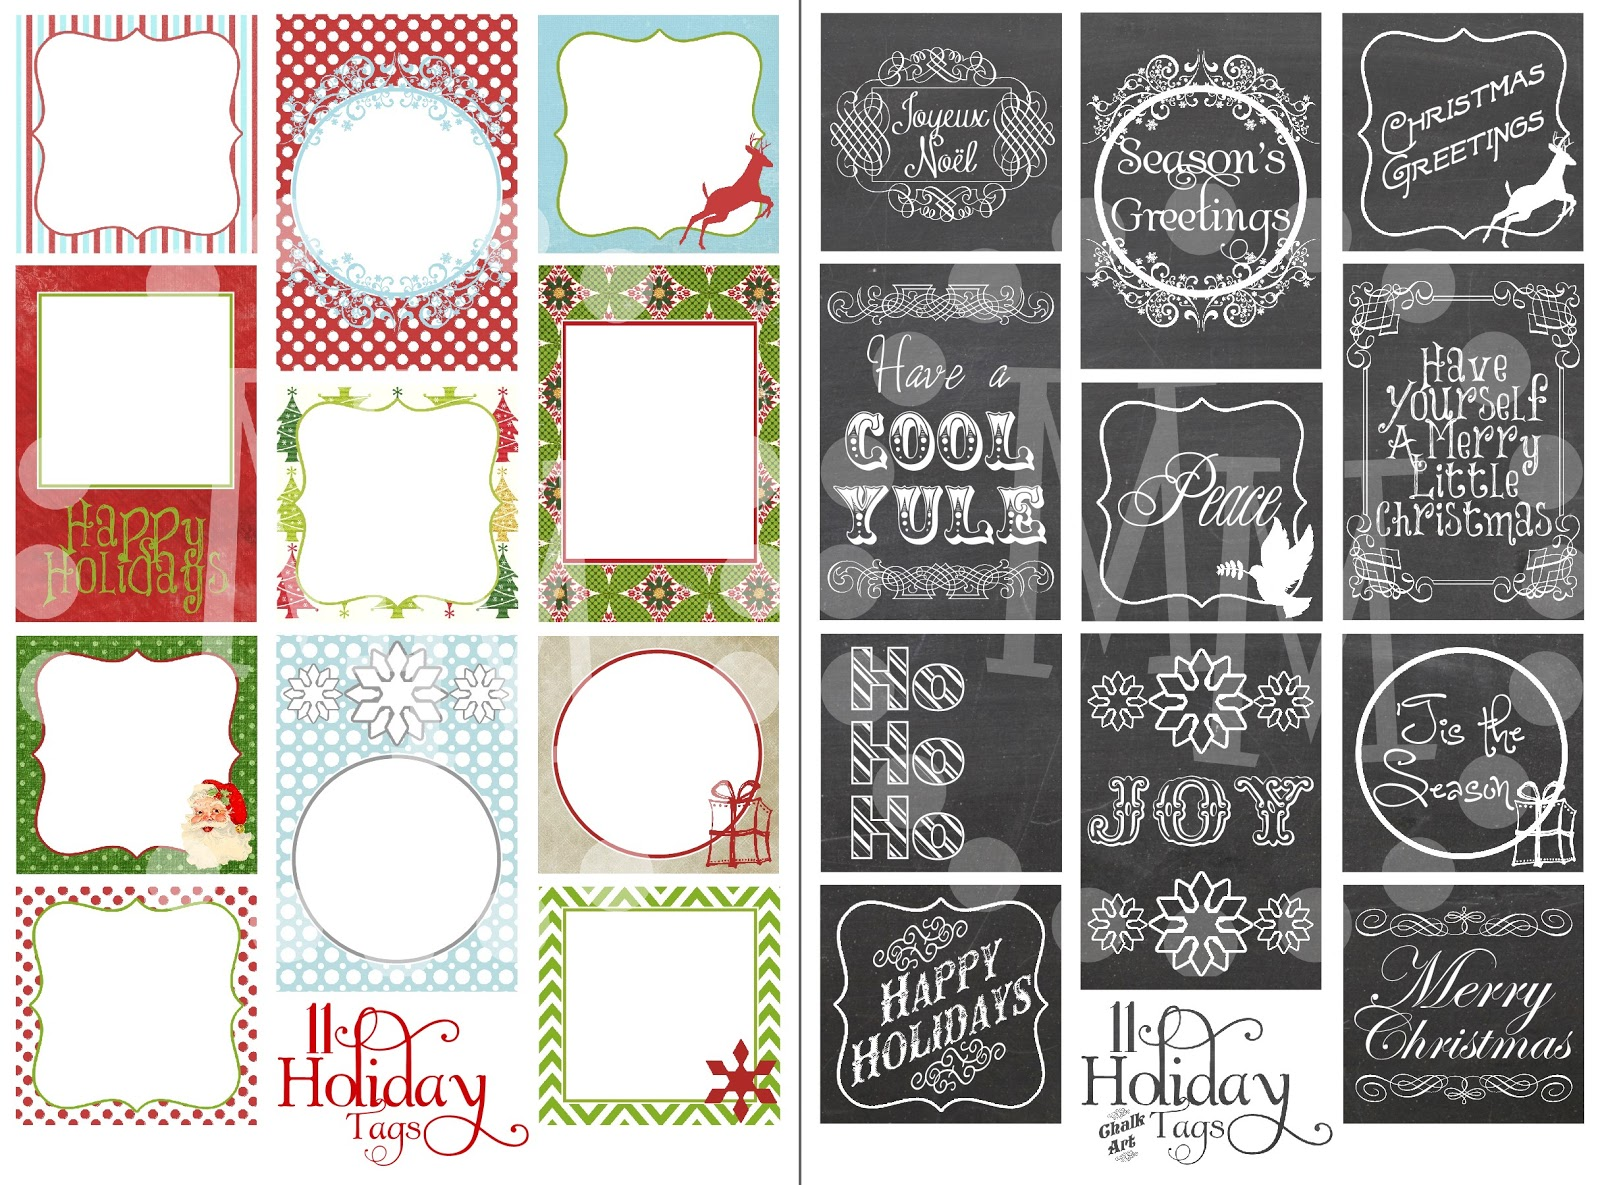 Christmas Tags: Top 10 Projects Of 2012!